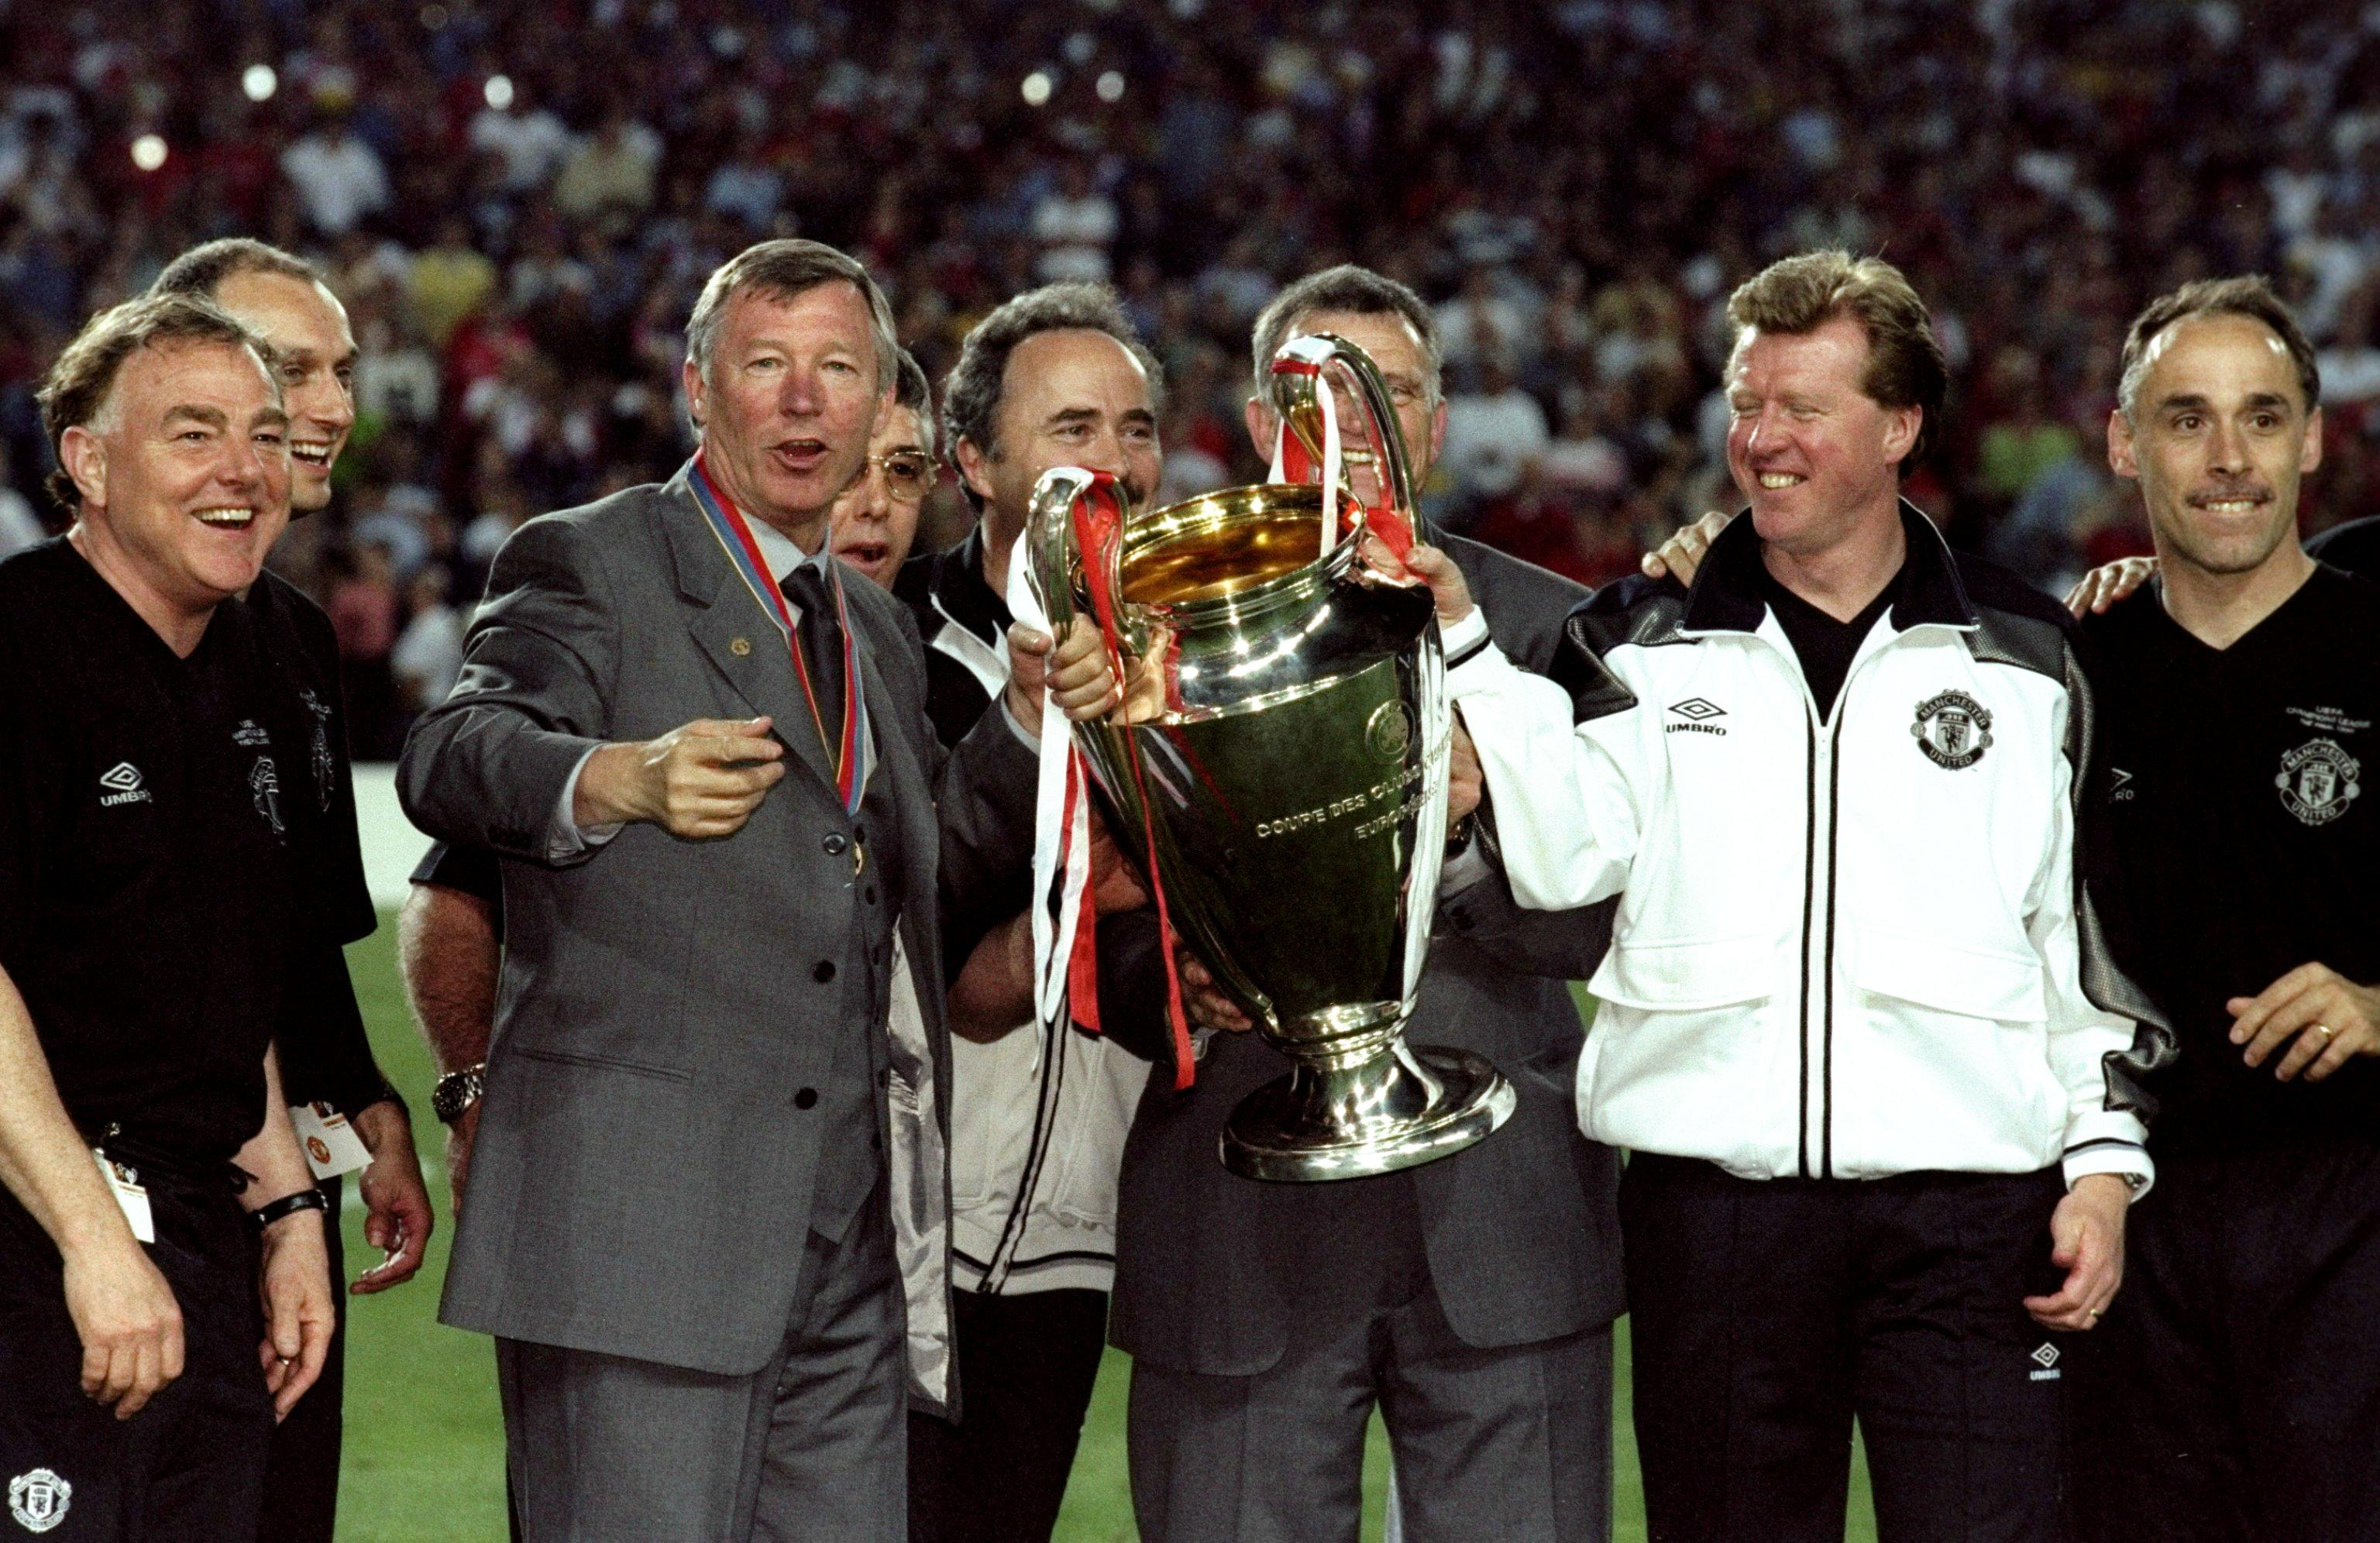 Steve McClaren was part of Sir Alex Ferguson's backroom team that guided Man United to Champions League success